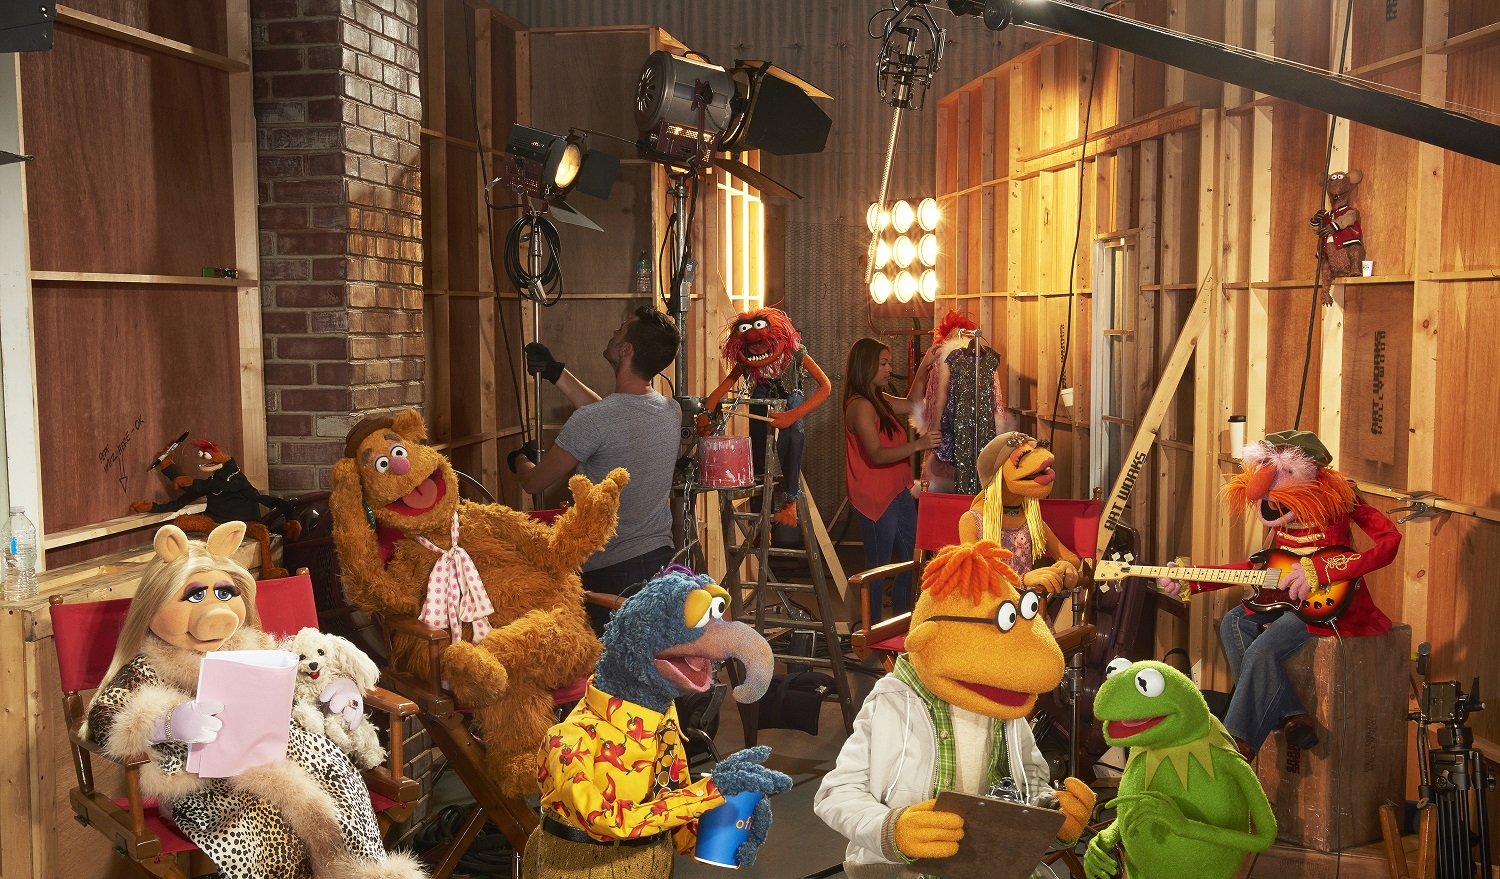 MISS PIGGY, PEPE THE KING PRAWN, FOZZIE BEAR, THE GREAT GONZO, ANIMAL, SCOOTER, JANICE, KERMIT THE FROG, FLOYD PEPPER